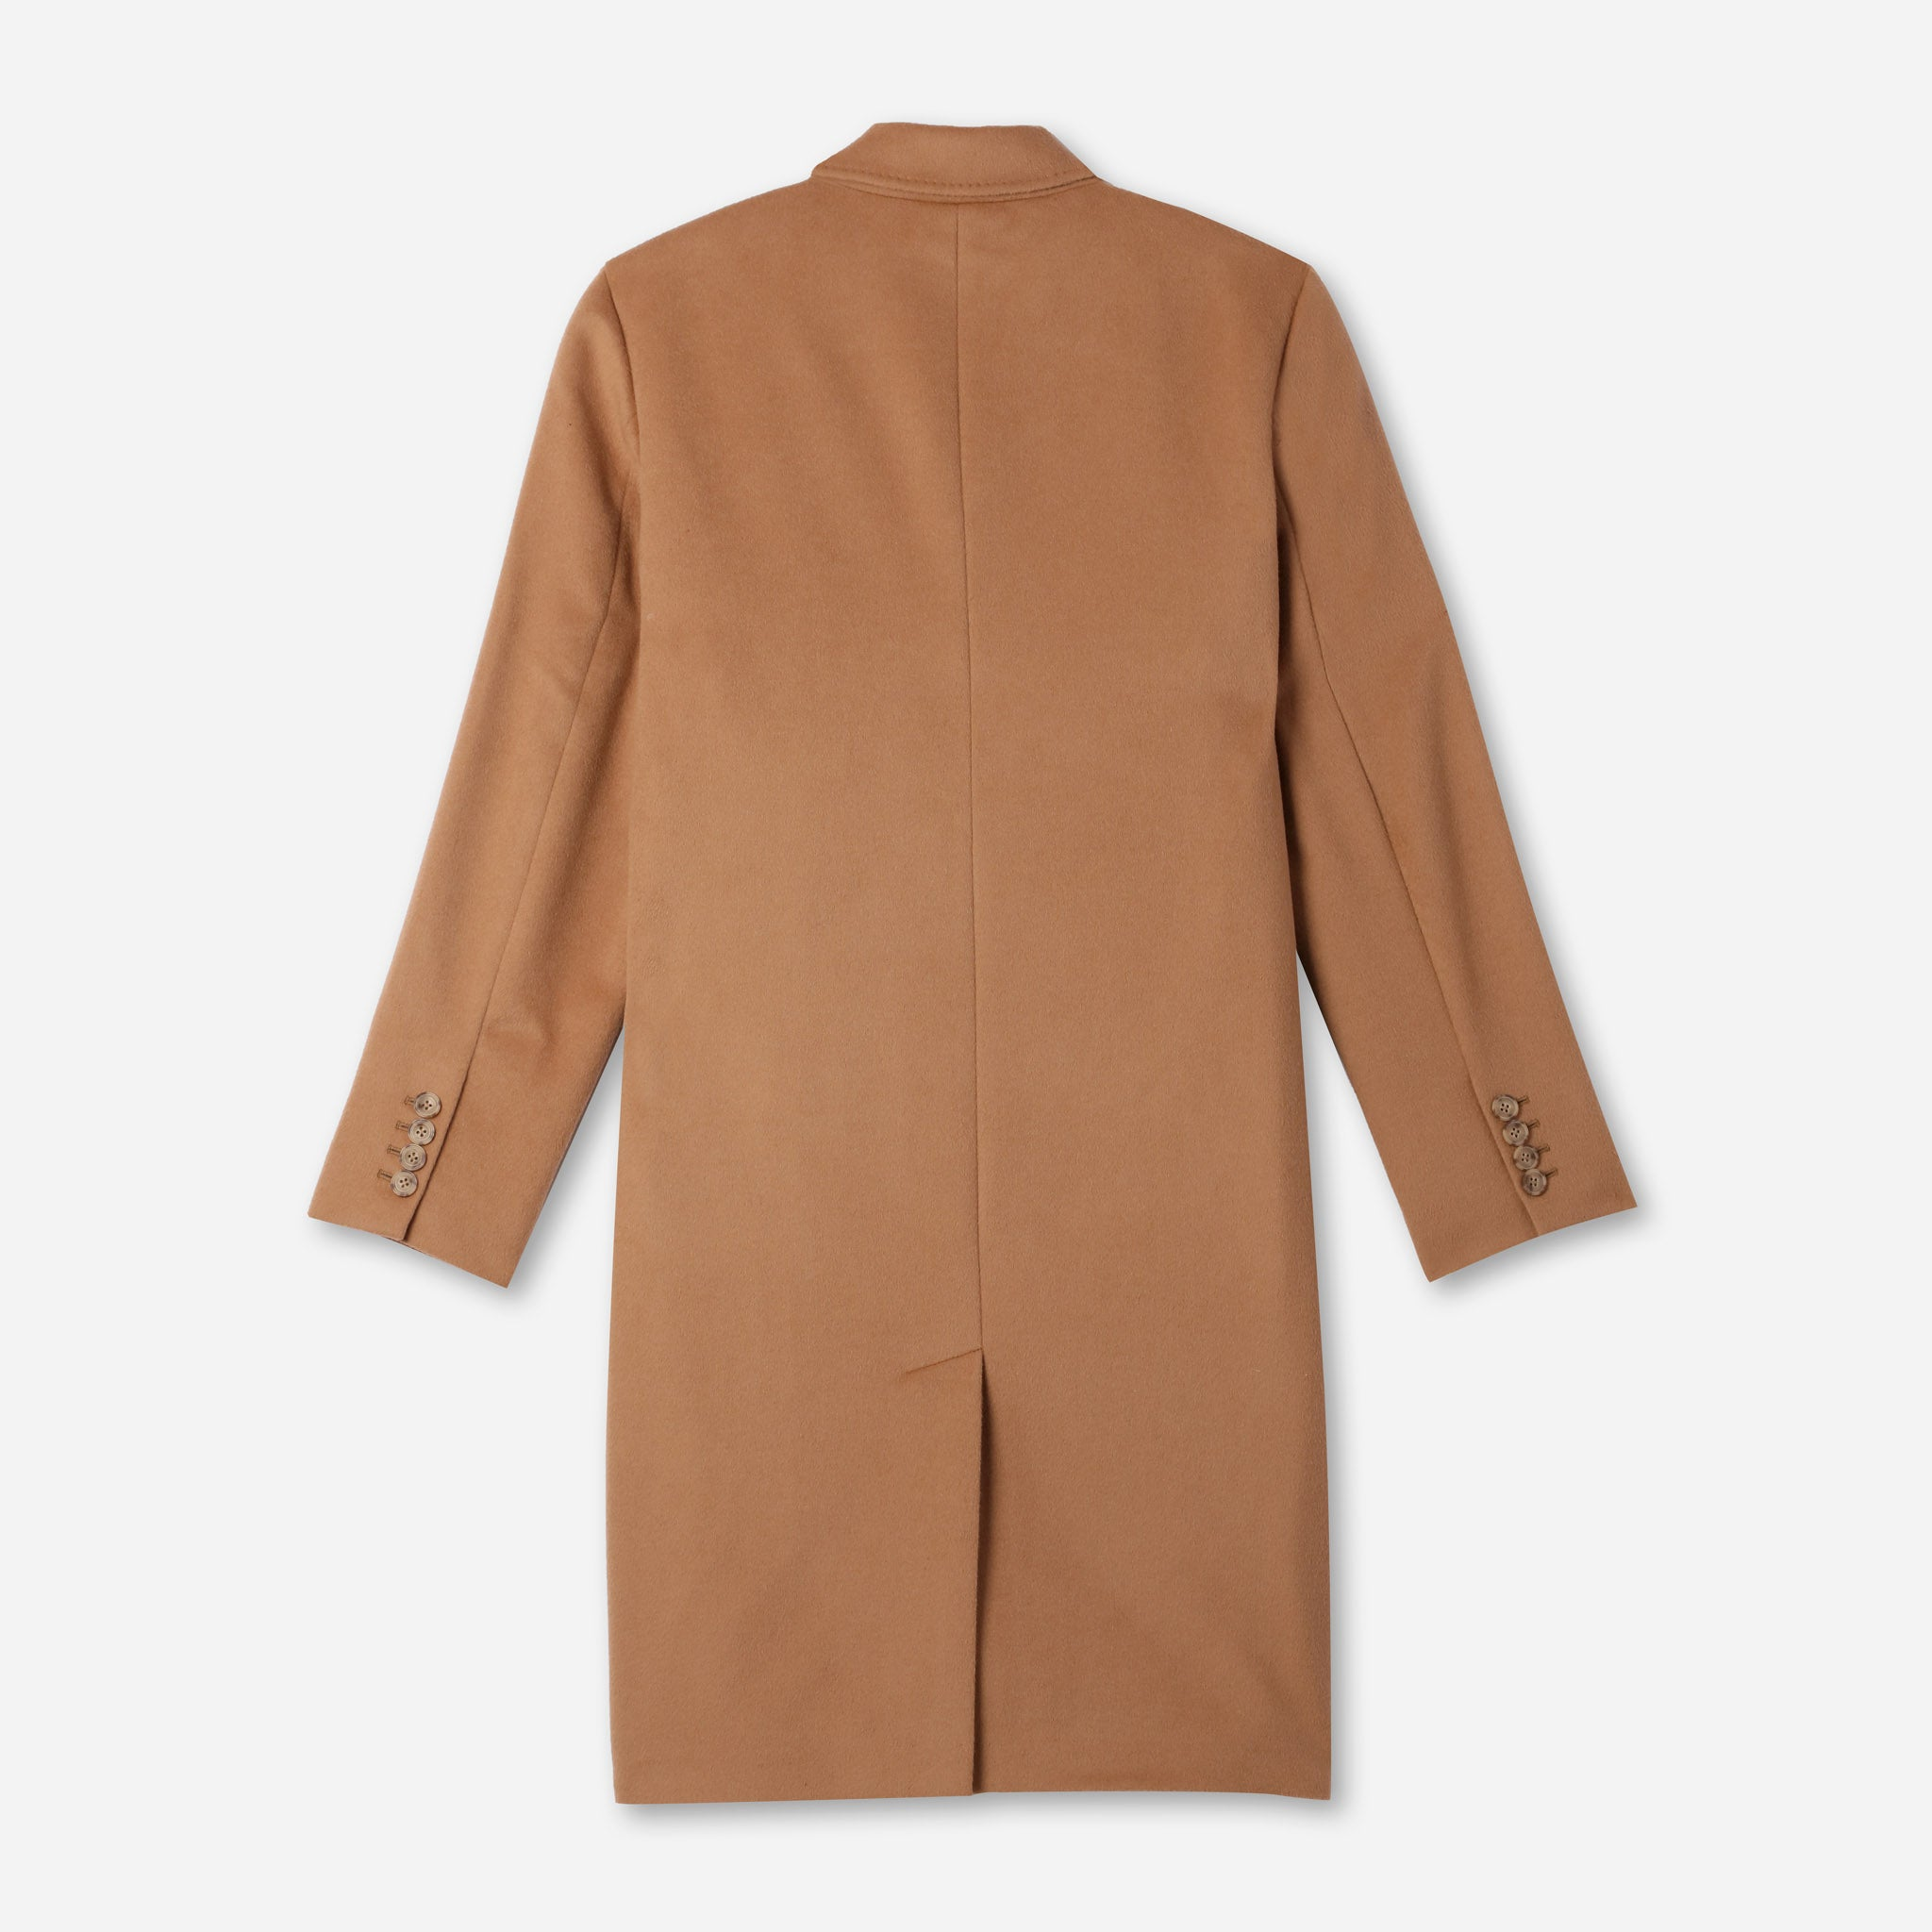 James Luxe Top Coat Loro Piana in Camel